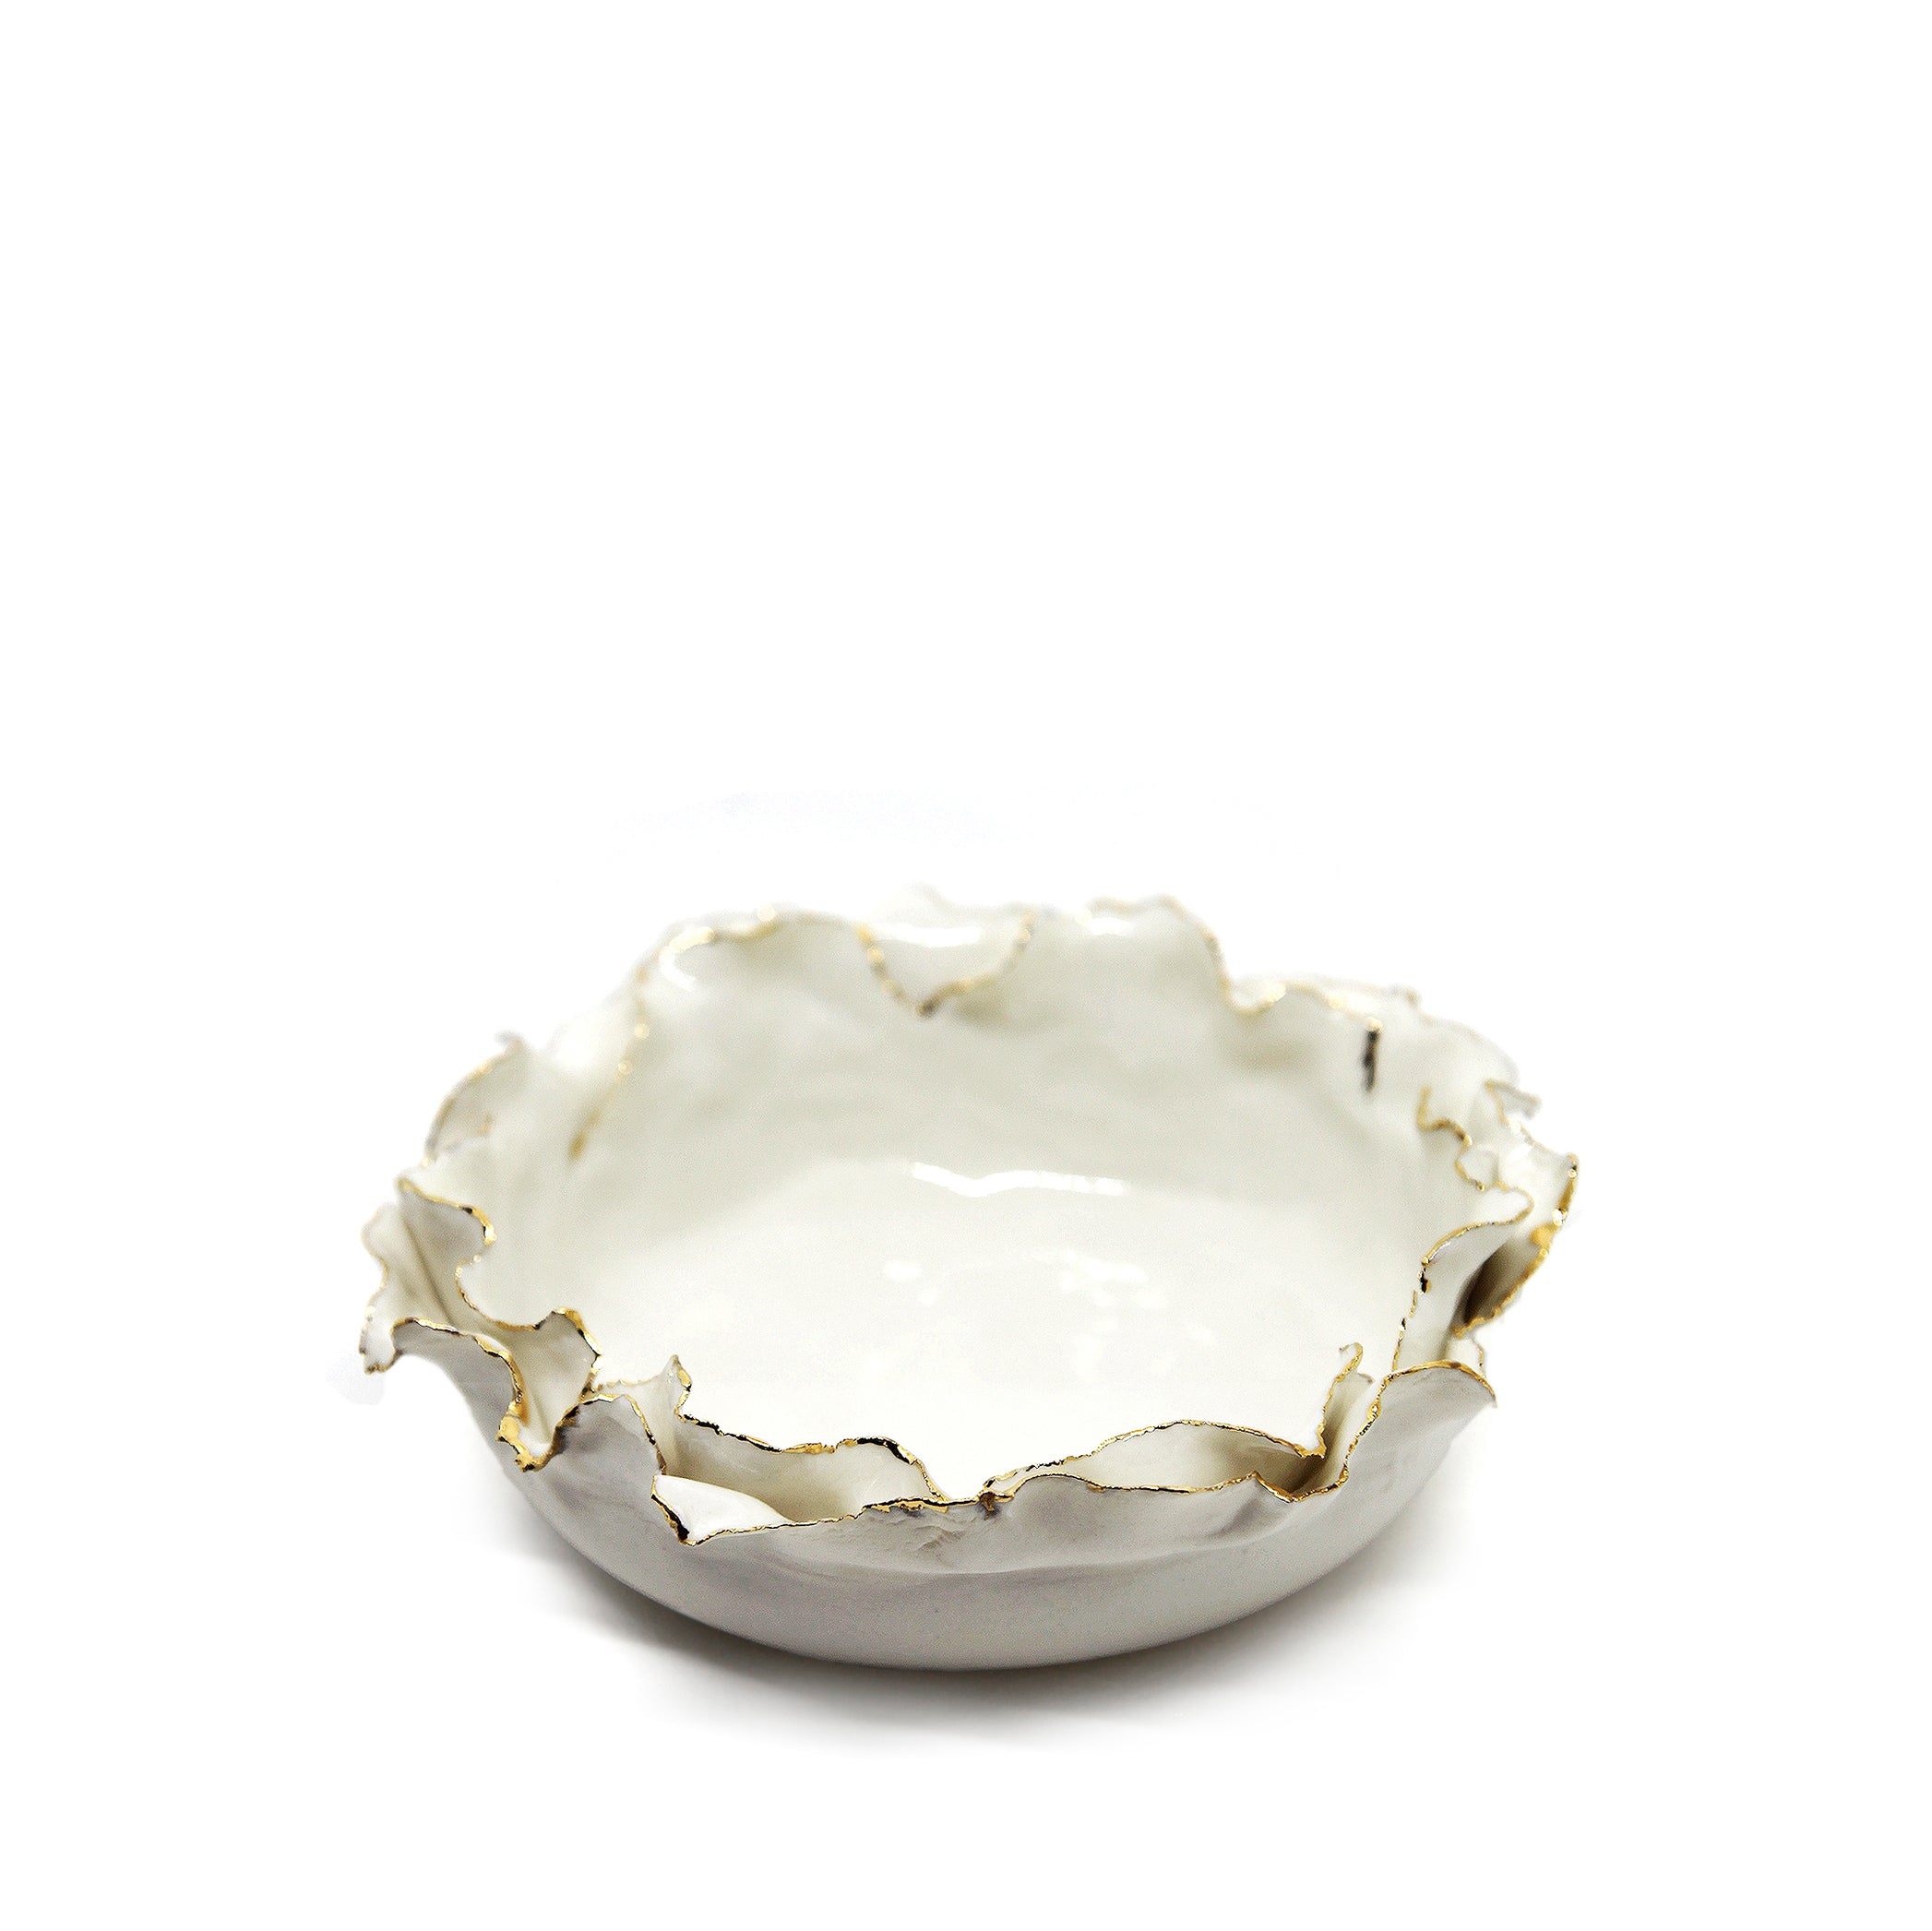 HB Small Flower Dish, 14cm